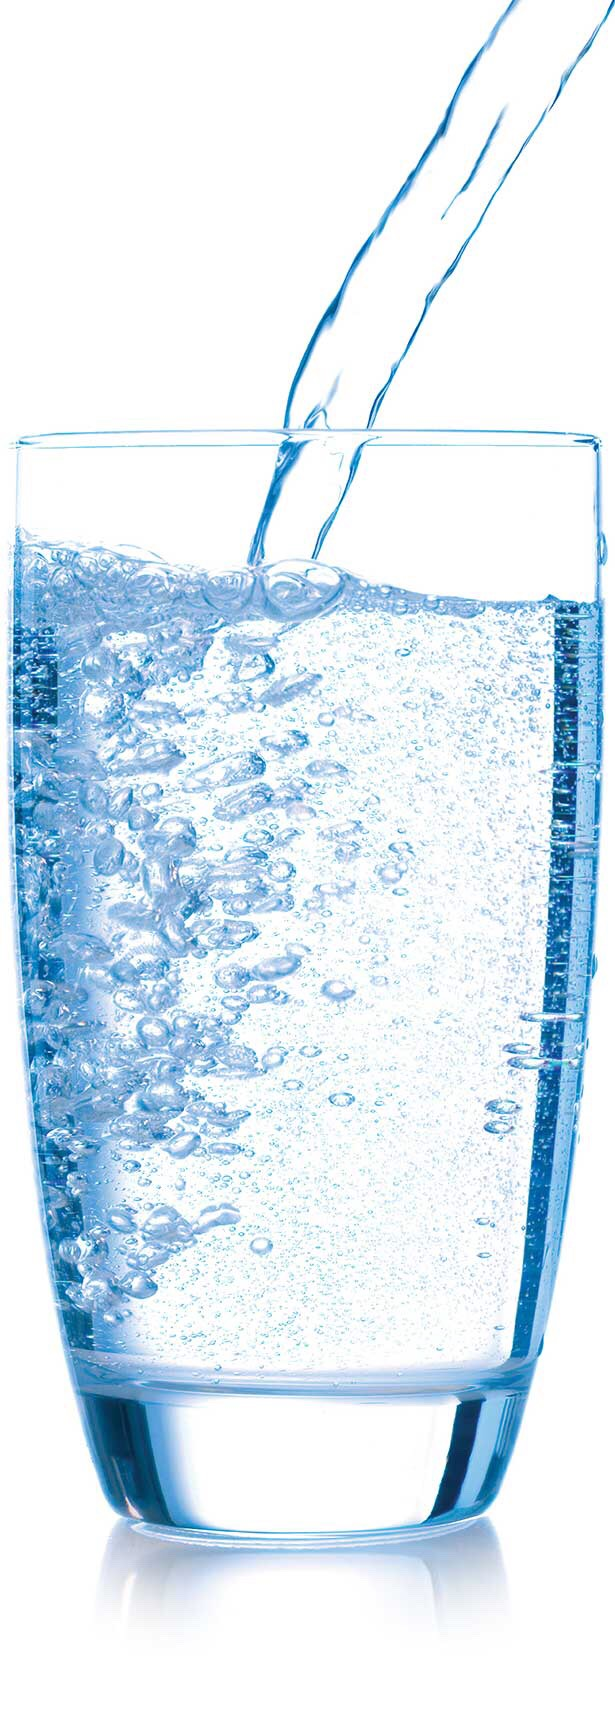 Drink water! 6-8 cups a day